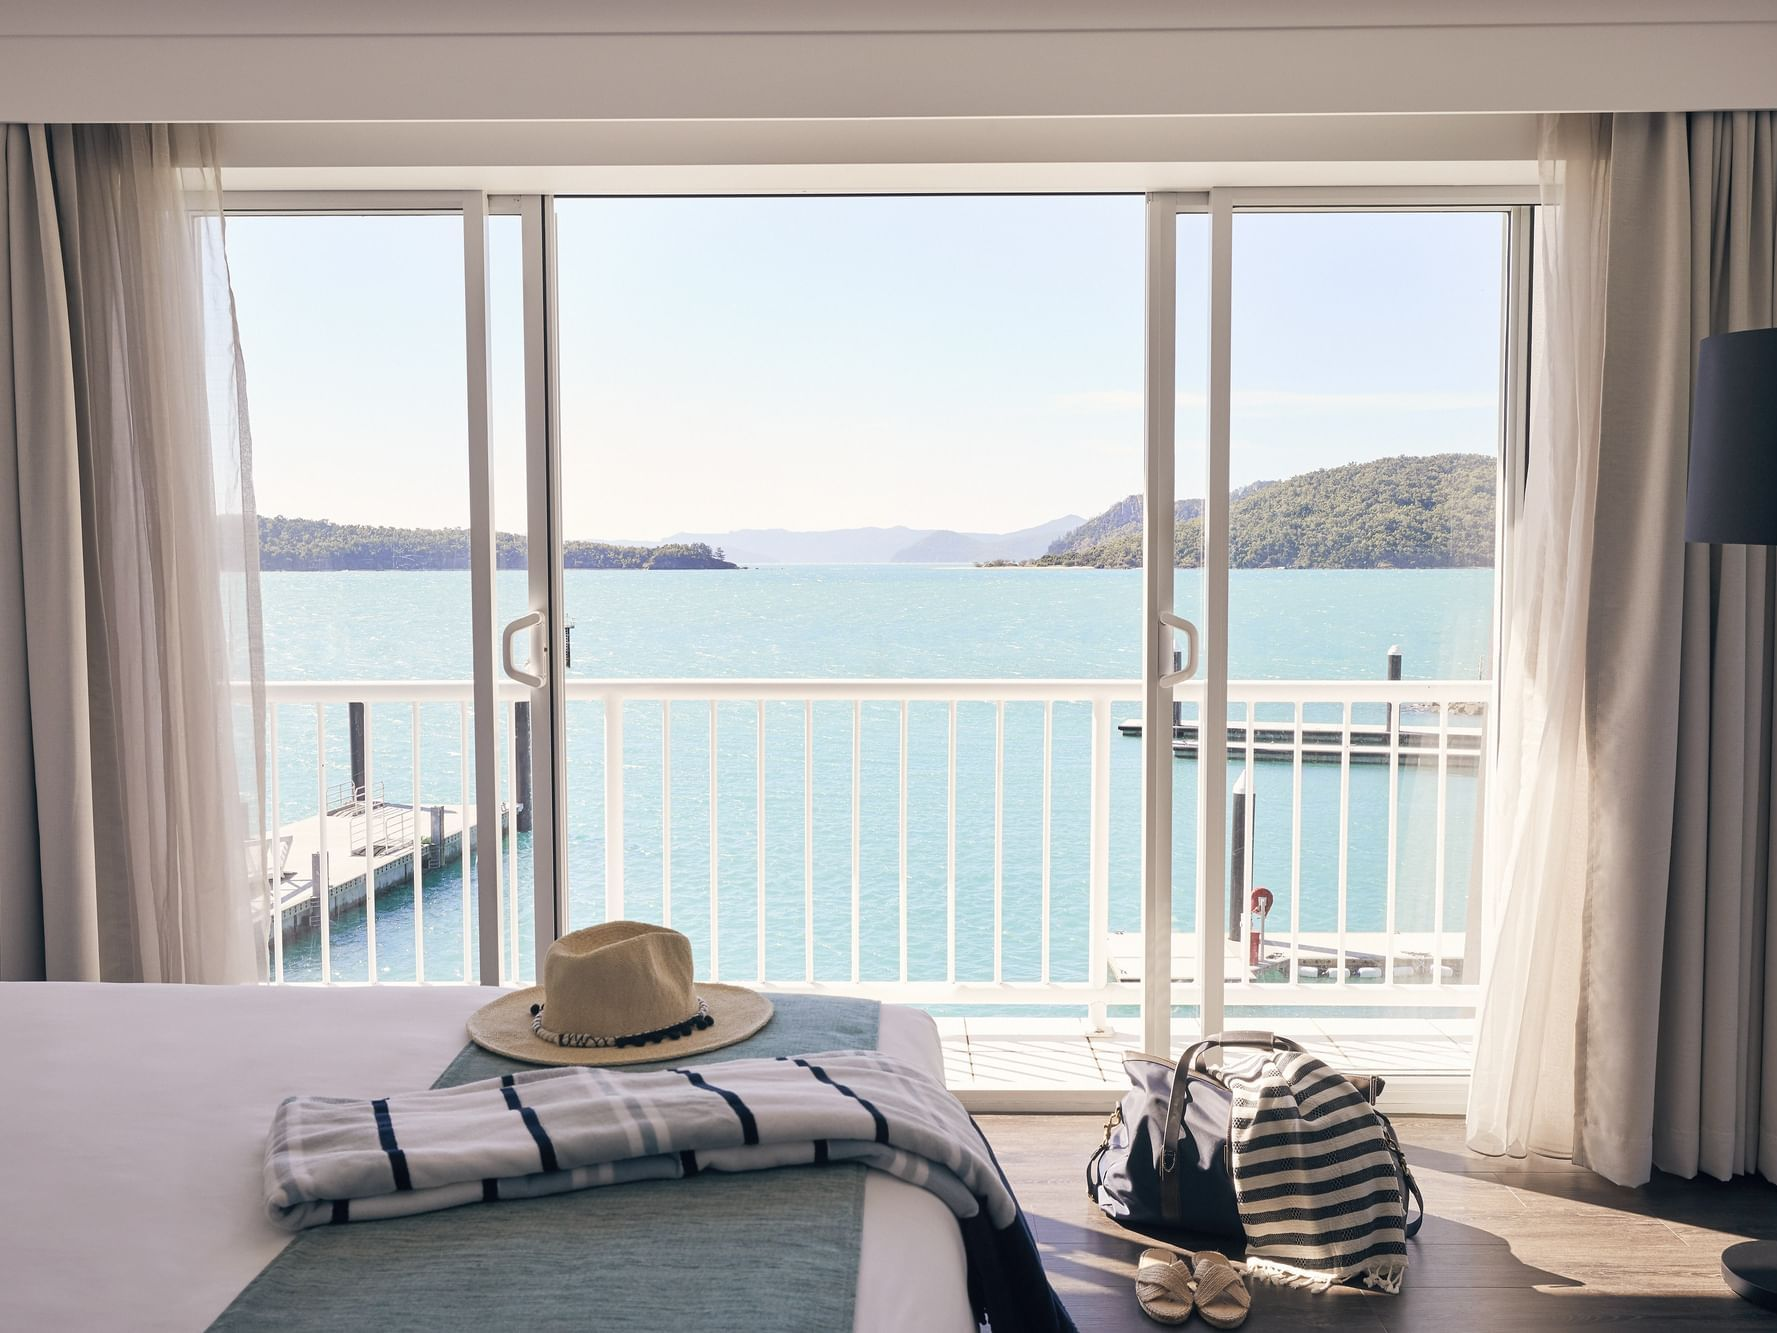 Ocean view from Superior room at Daydream Island Resort